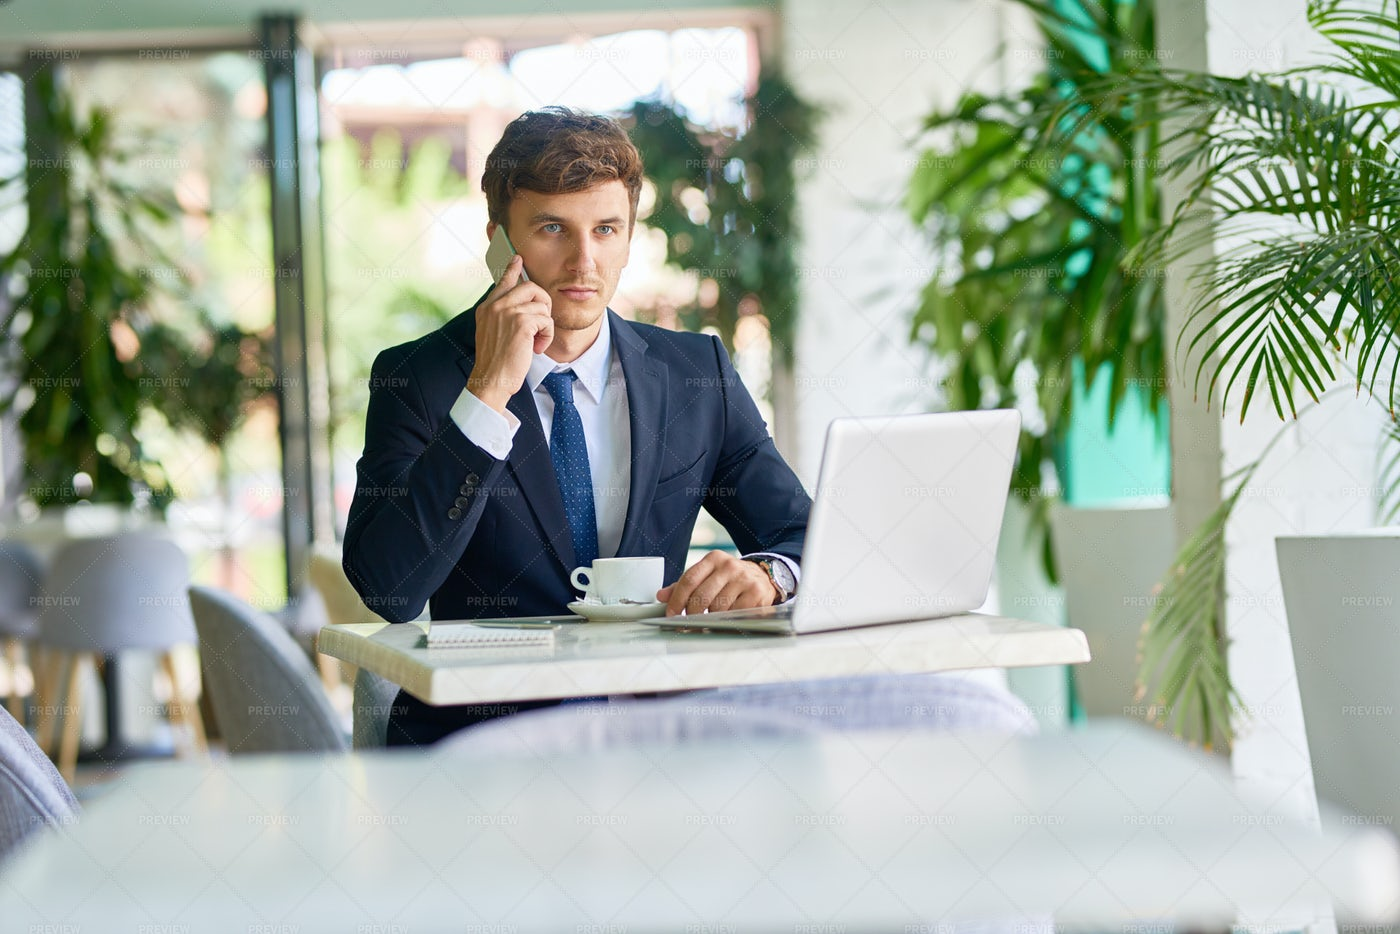 Contemporary Businessman Working In...: Stock Photos